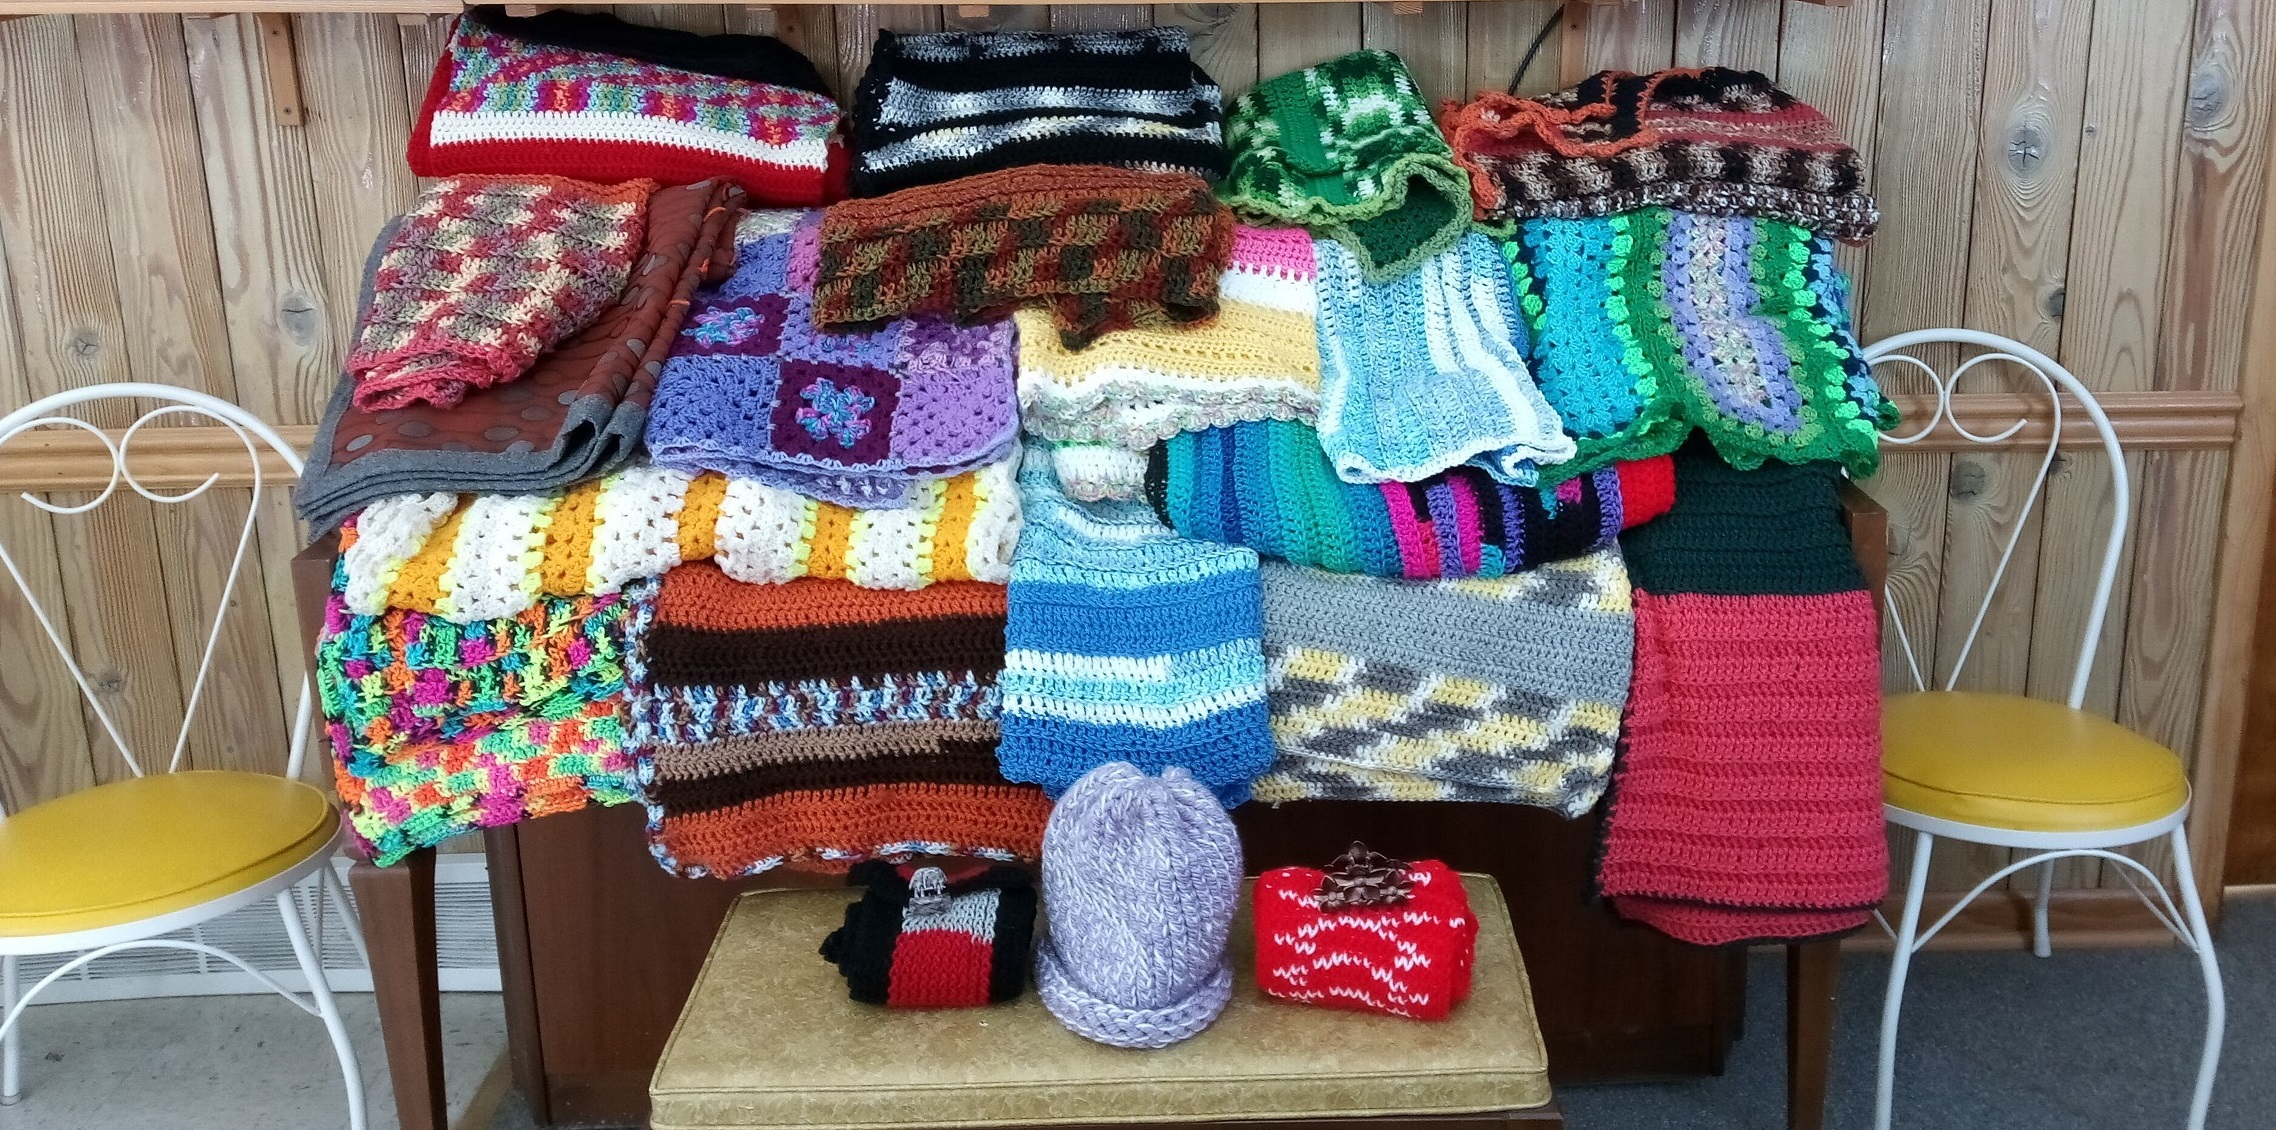 Local Senior Center Donates Hand-Knitted Wheelchair Blankets